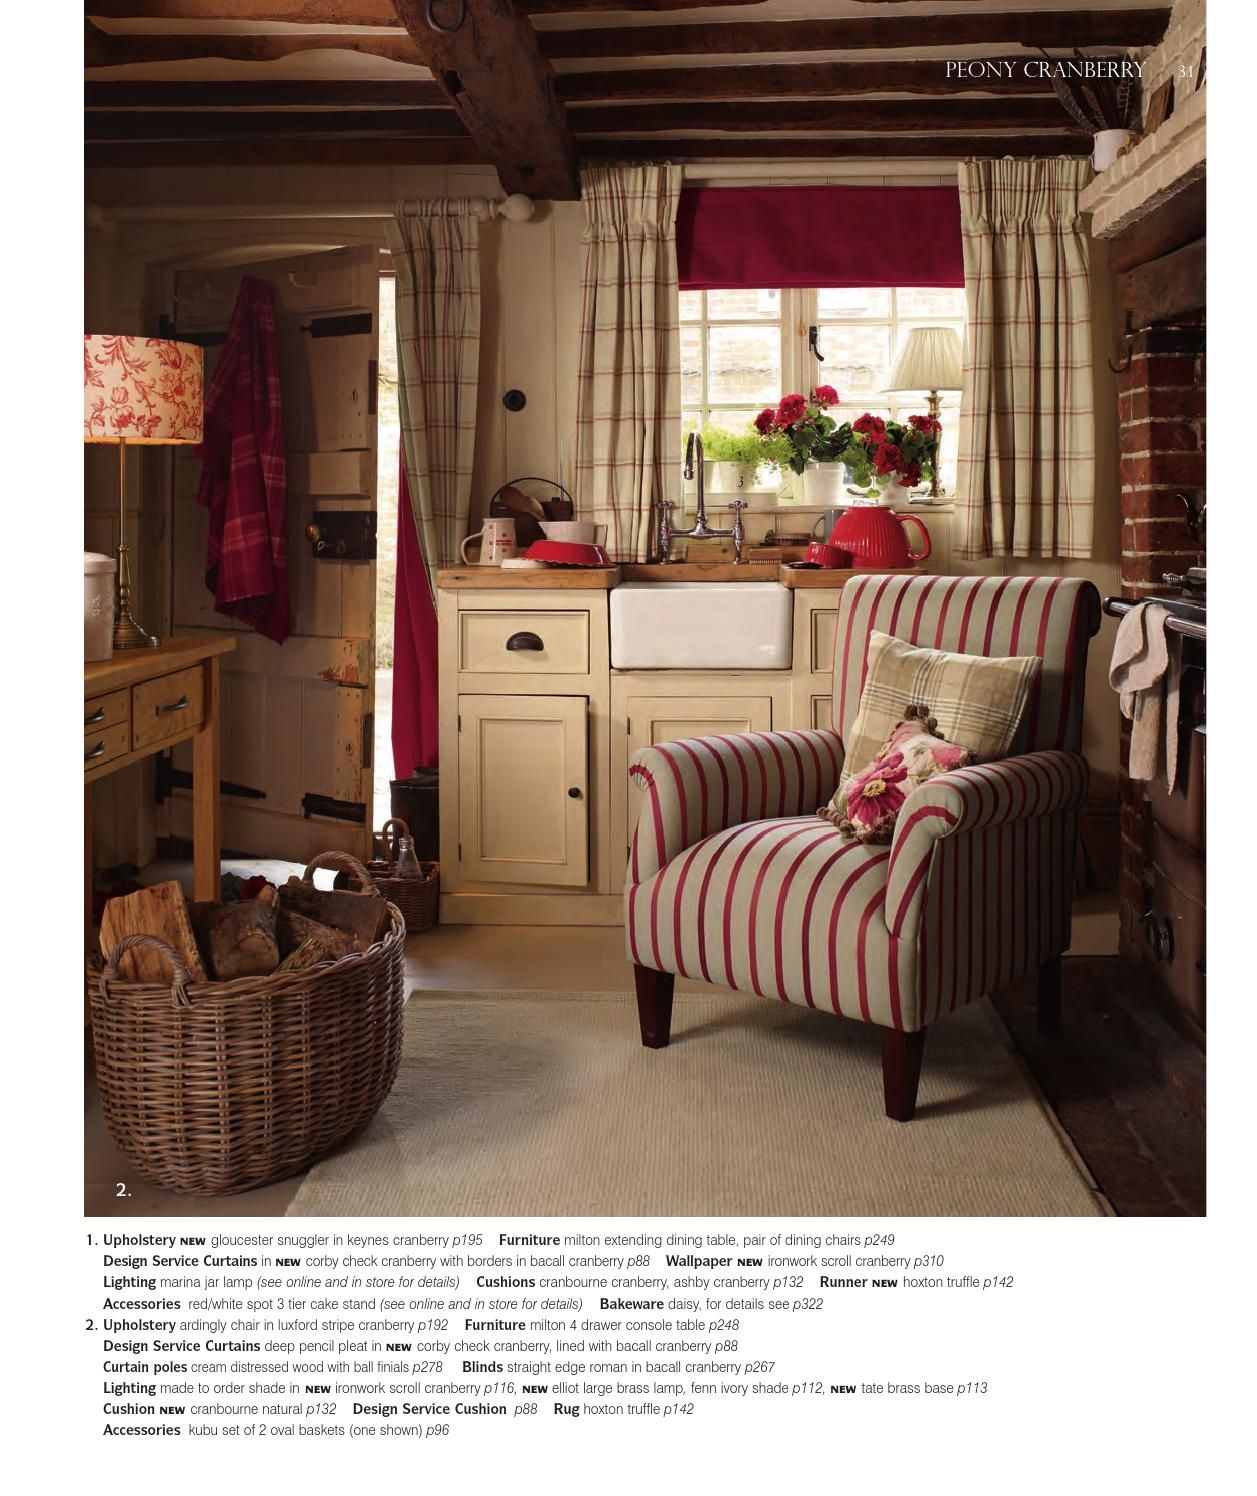 laura ashley home autumn winter 2013 englische stil wohnung einrichten und polster. Black Bedroom Furniture Sets. Home Design Ideas